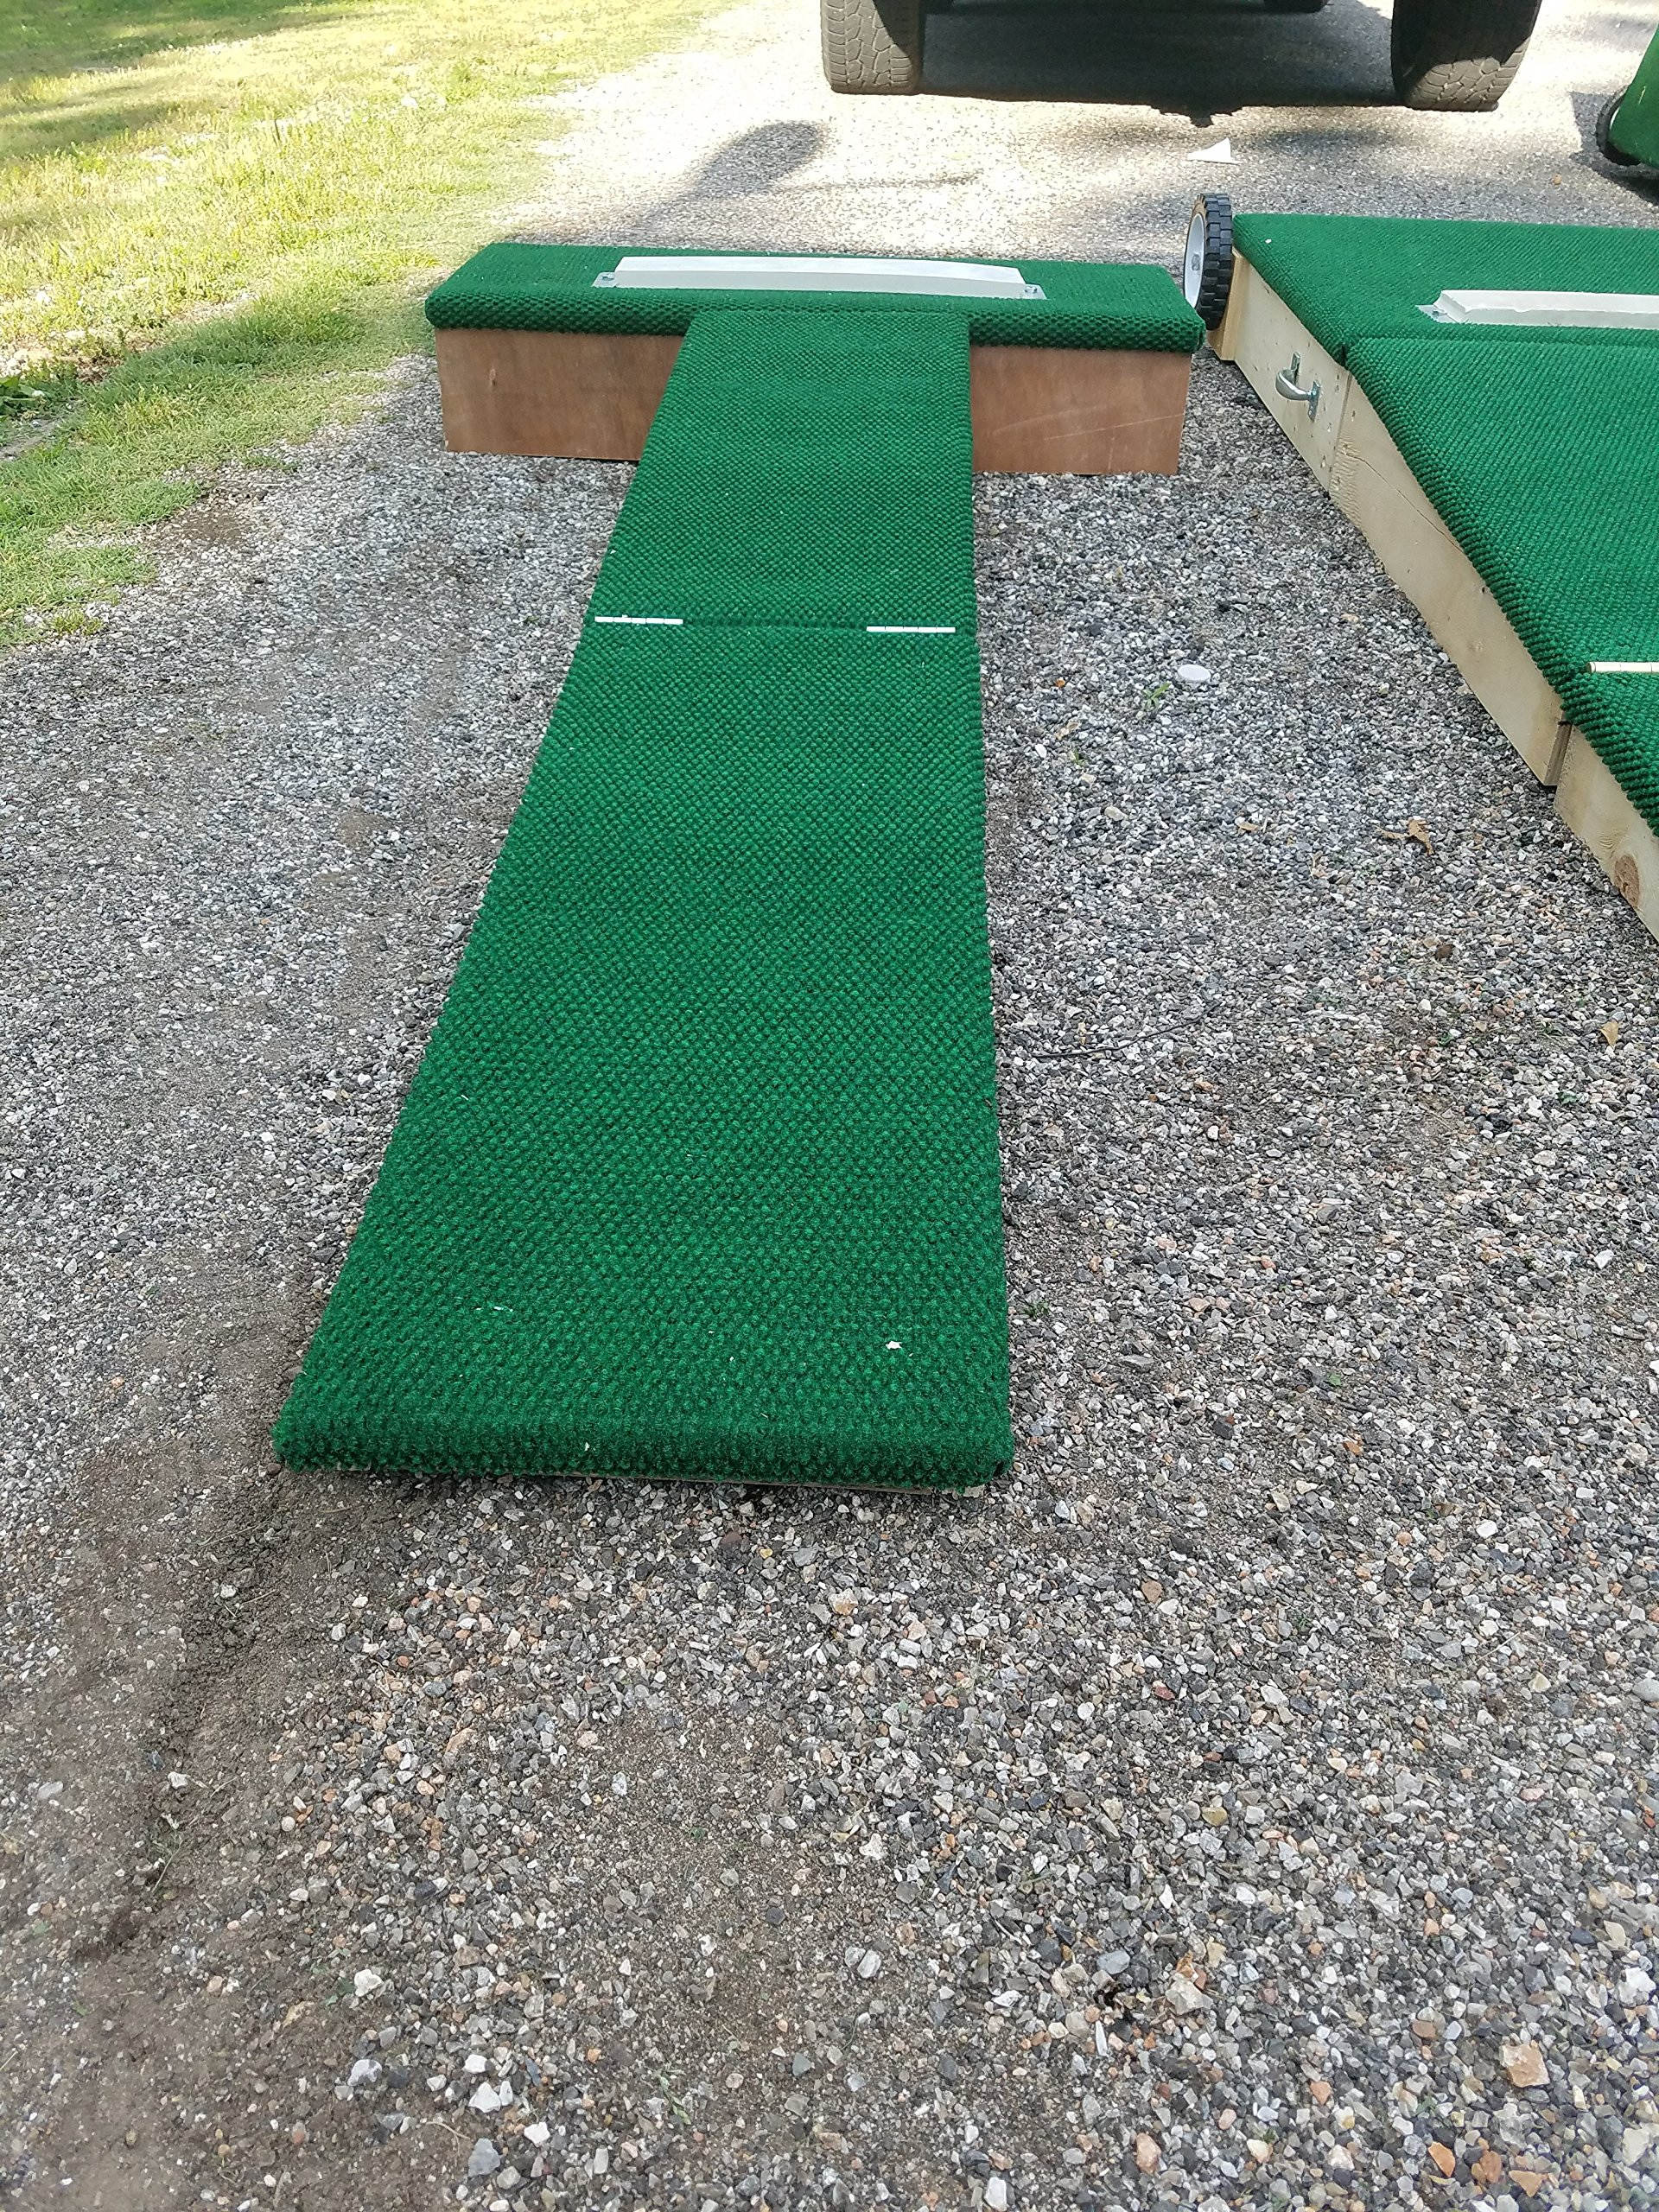 Players Choice Mounds Step Straight Youth Baseball Training Aid! Ultra-Light Portable Pitching Mound! by Players Choice Mounds